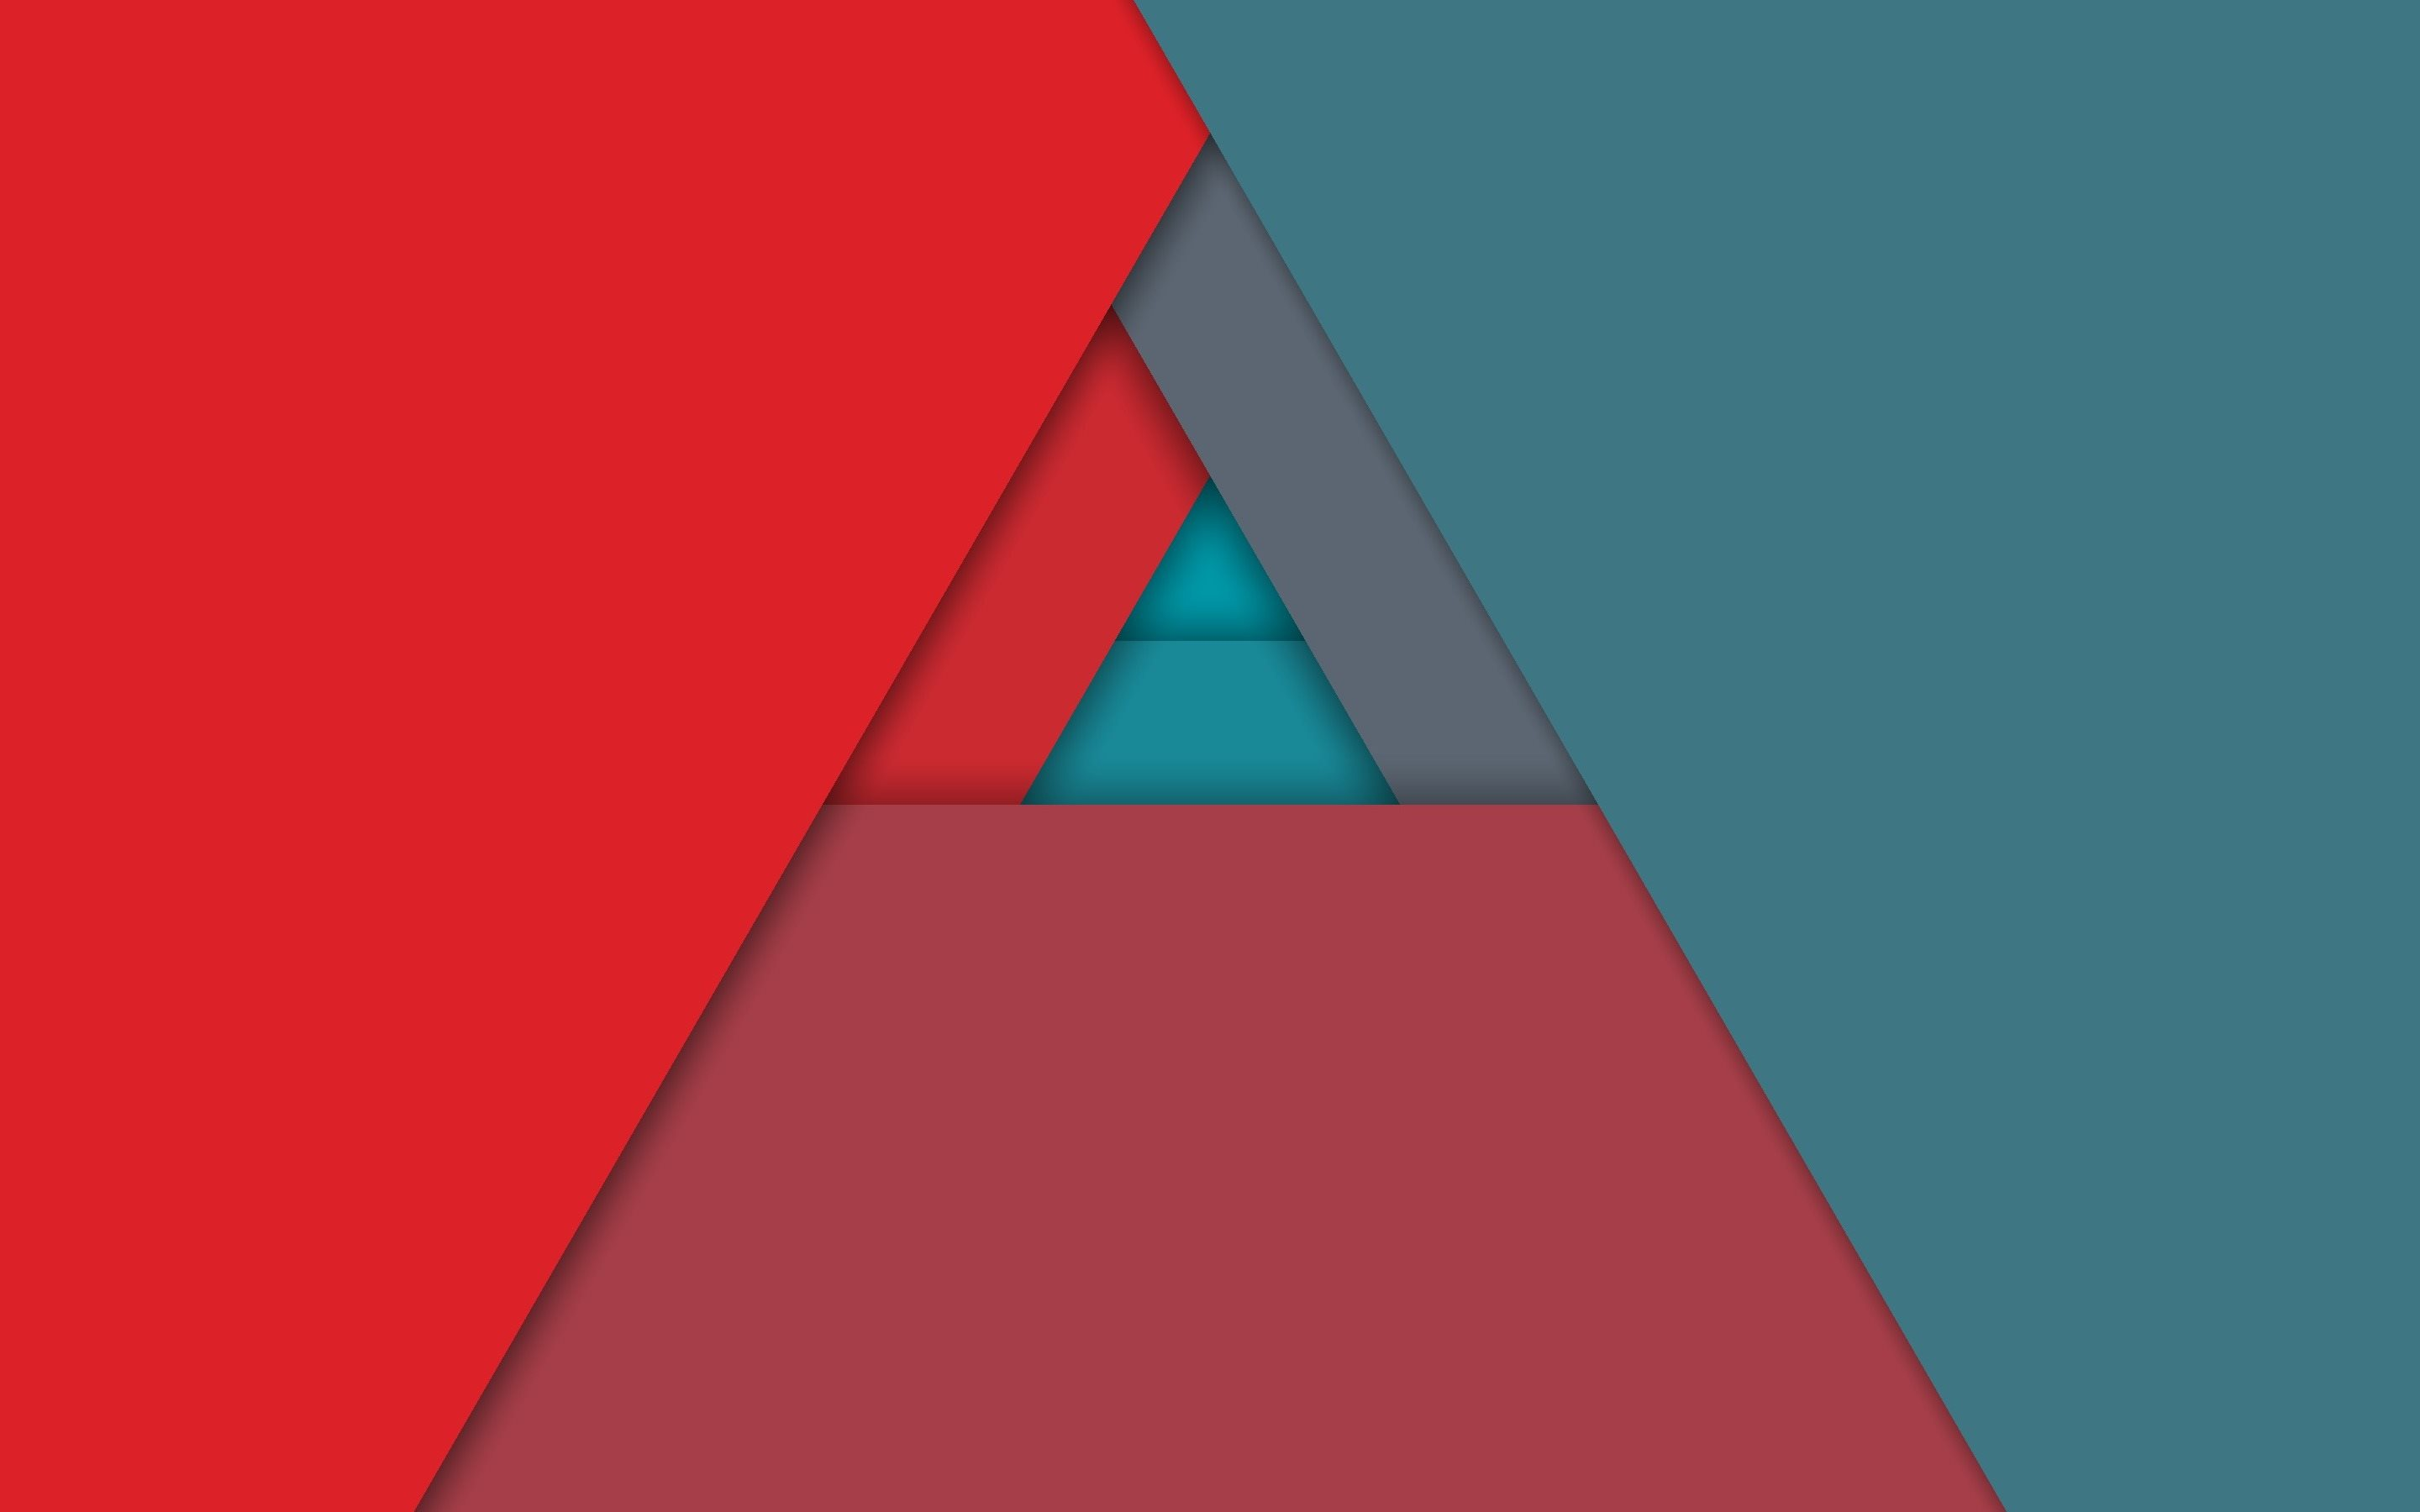 hd wallpapers for android lollipop,blue,red,triangle,colorfulness,line